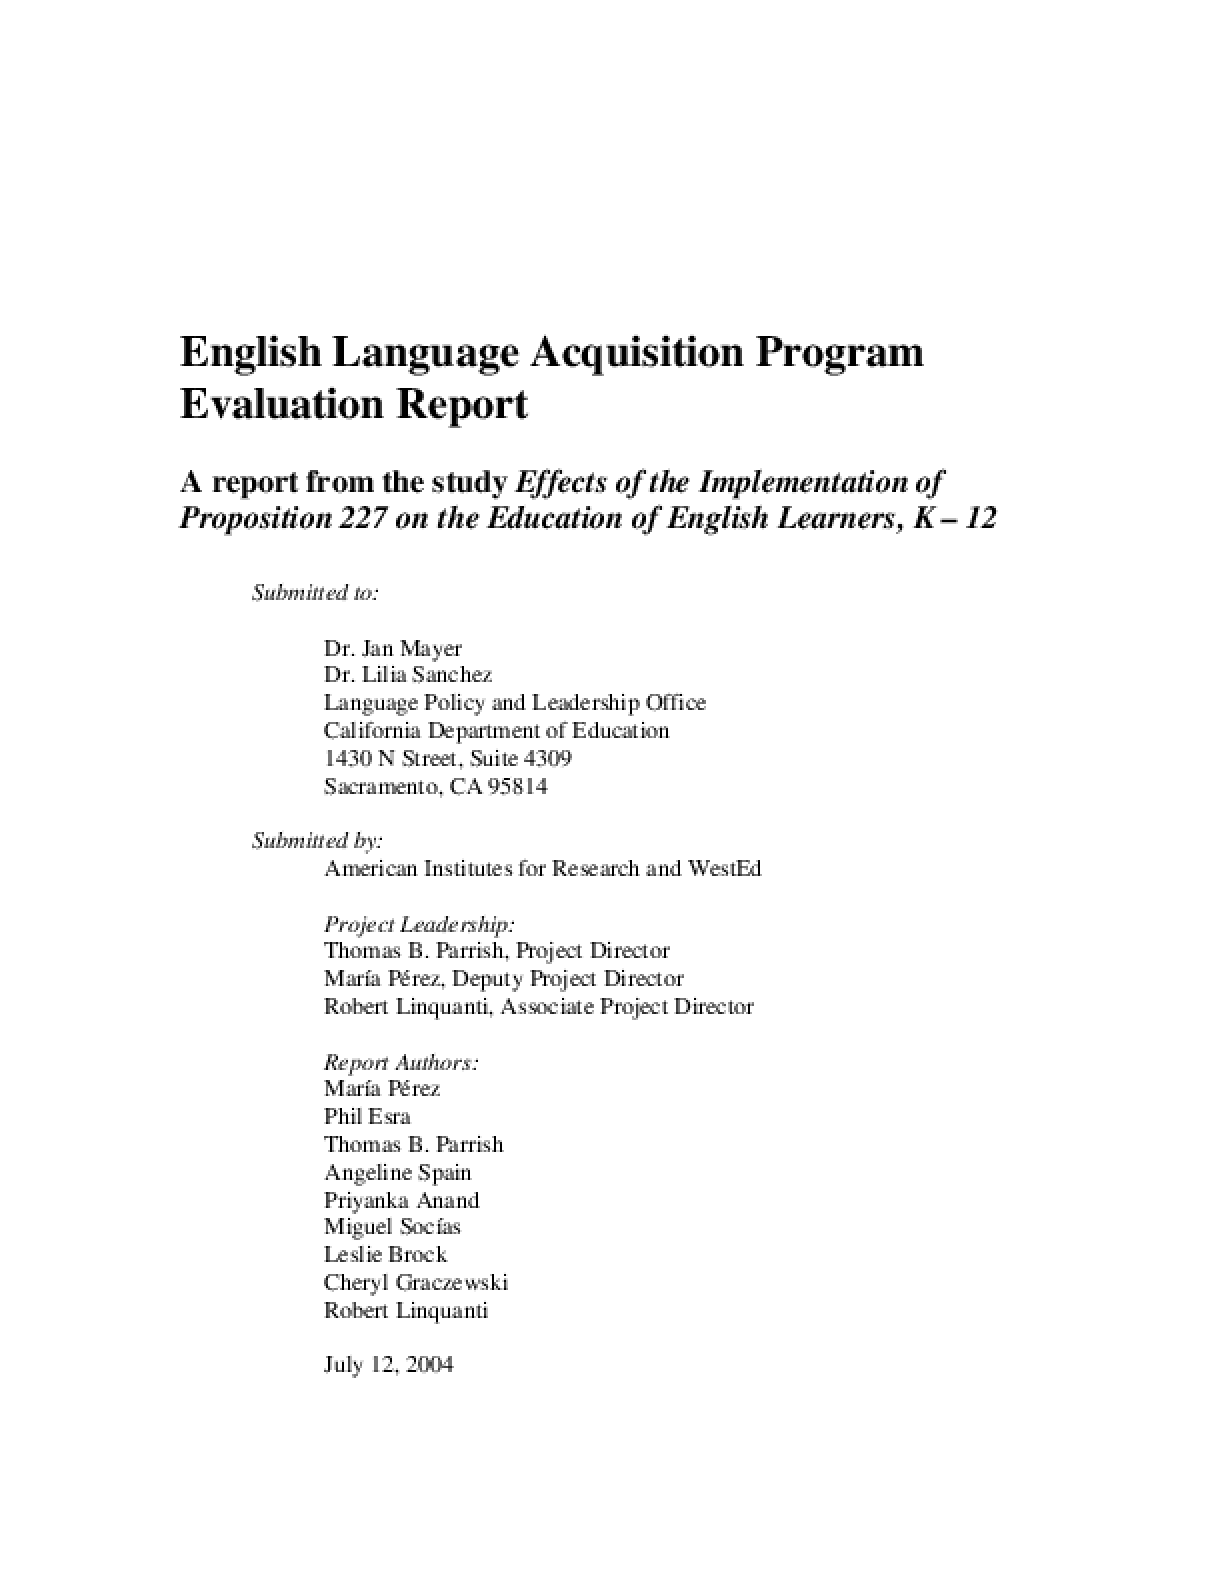 Effects of the Implementation of Proposition 227 on the Education of English Learners, K-12: 2004 Report